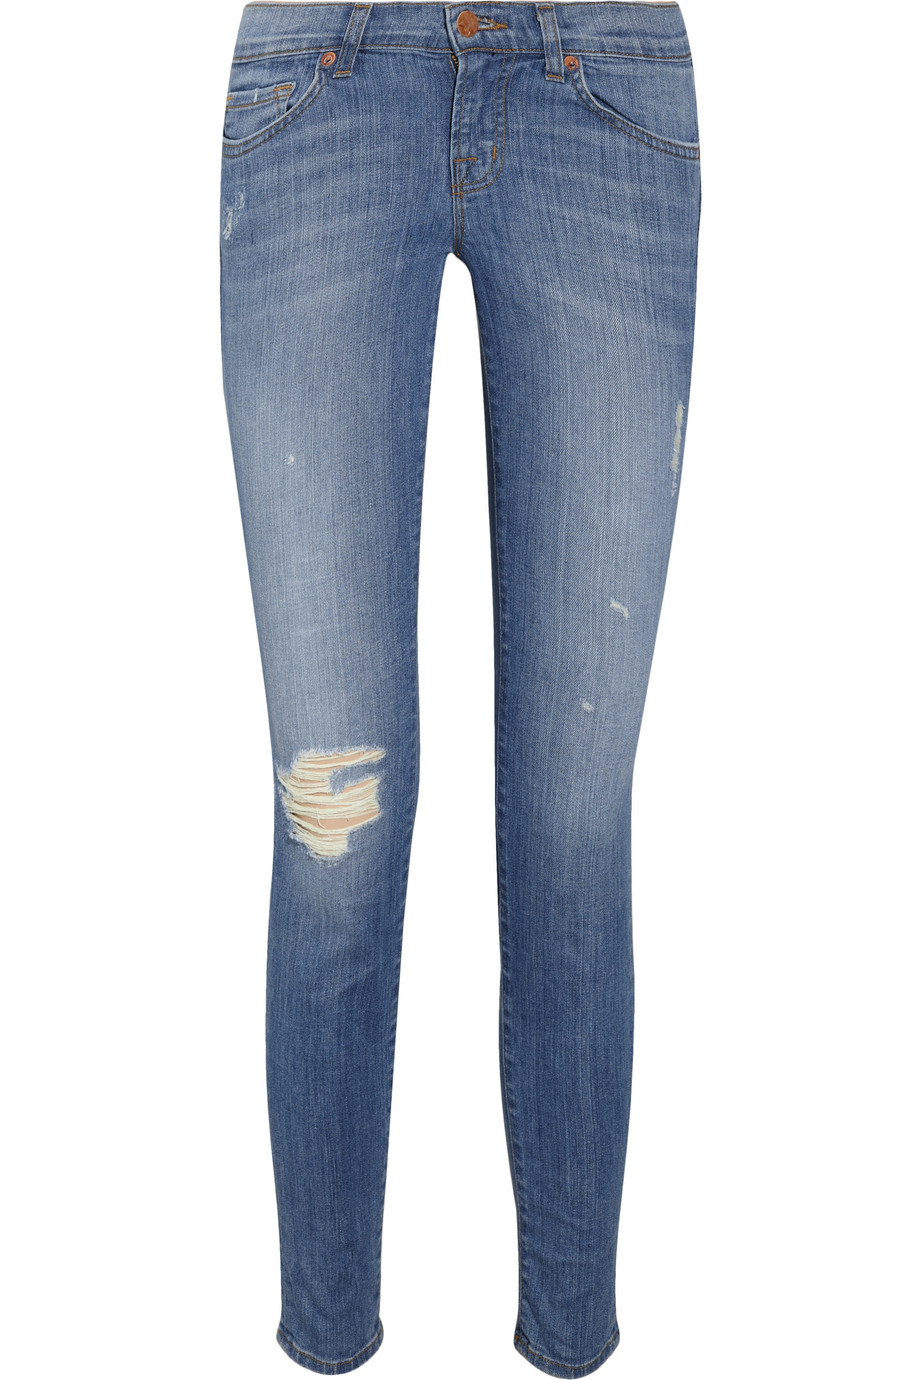 j brand 39 ellis 39 cropped jeans in blue lyst. Black Bedroom Furniture Sets. Home Design Ideas